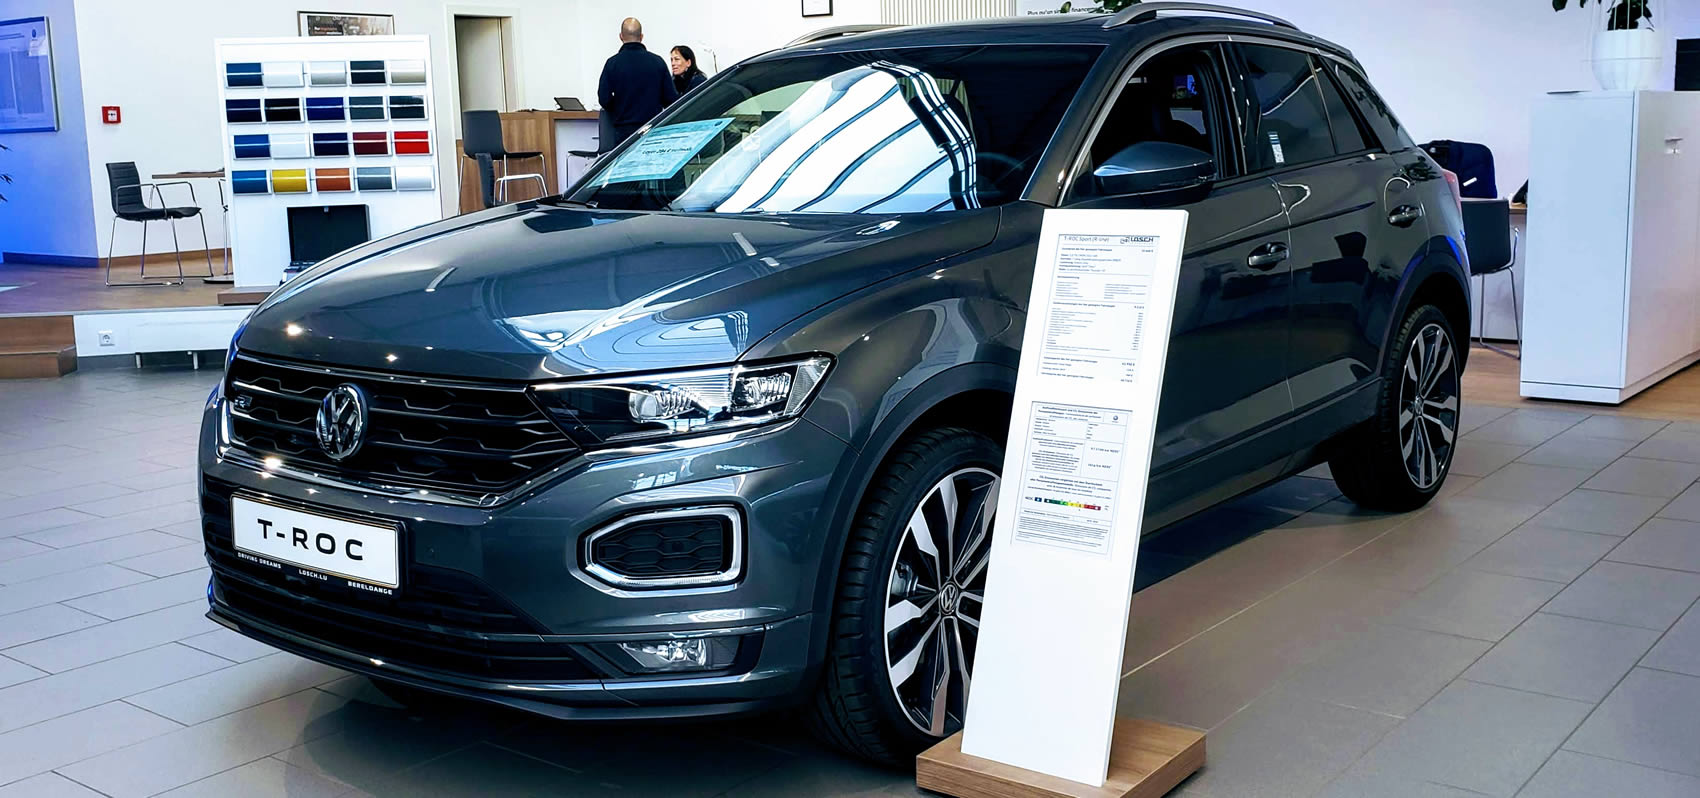 2019 vw t roc the volkswagen suv that may come to canada. Black Bedroom Furniture Sets. Home Design Ideas